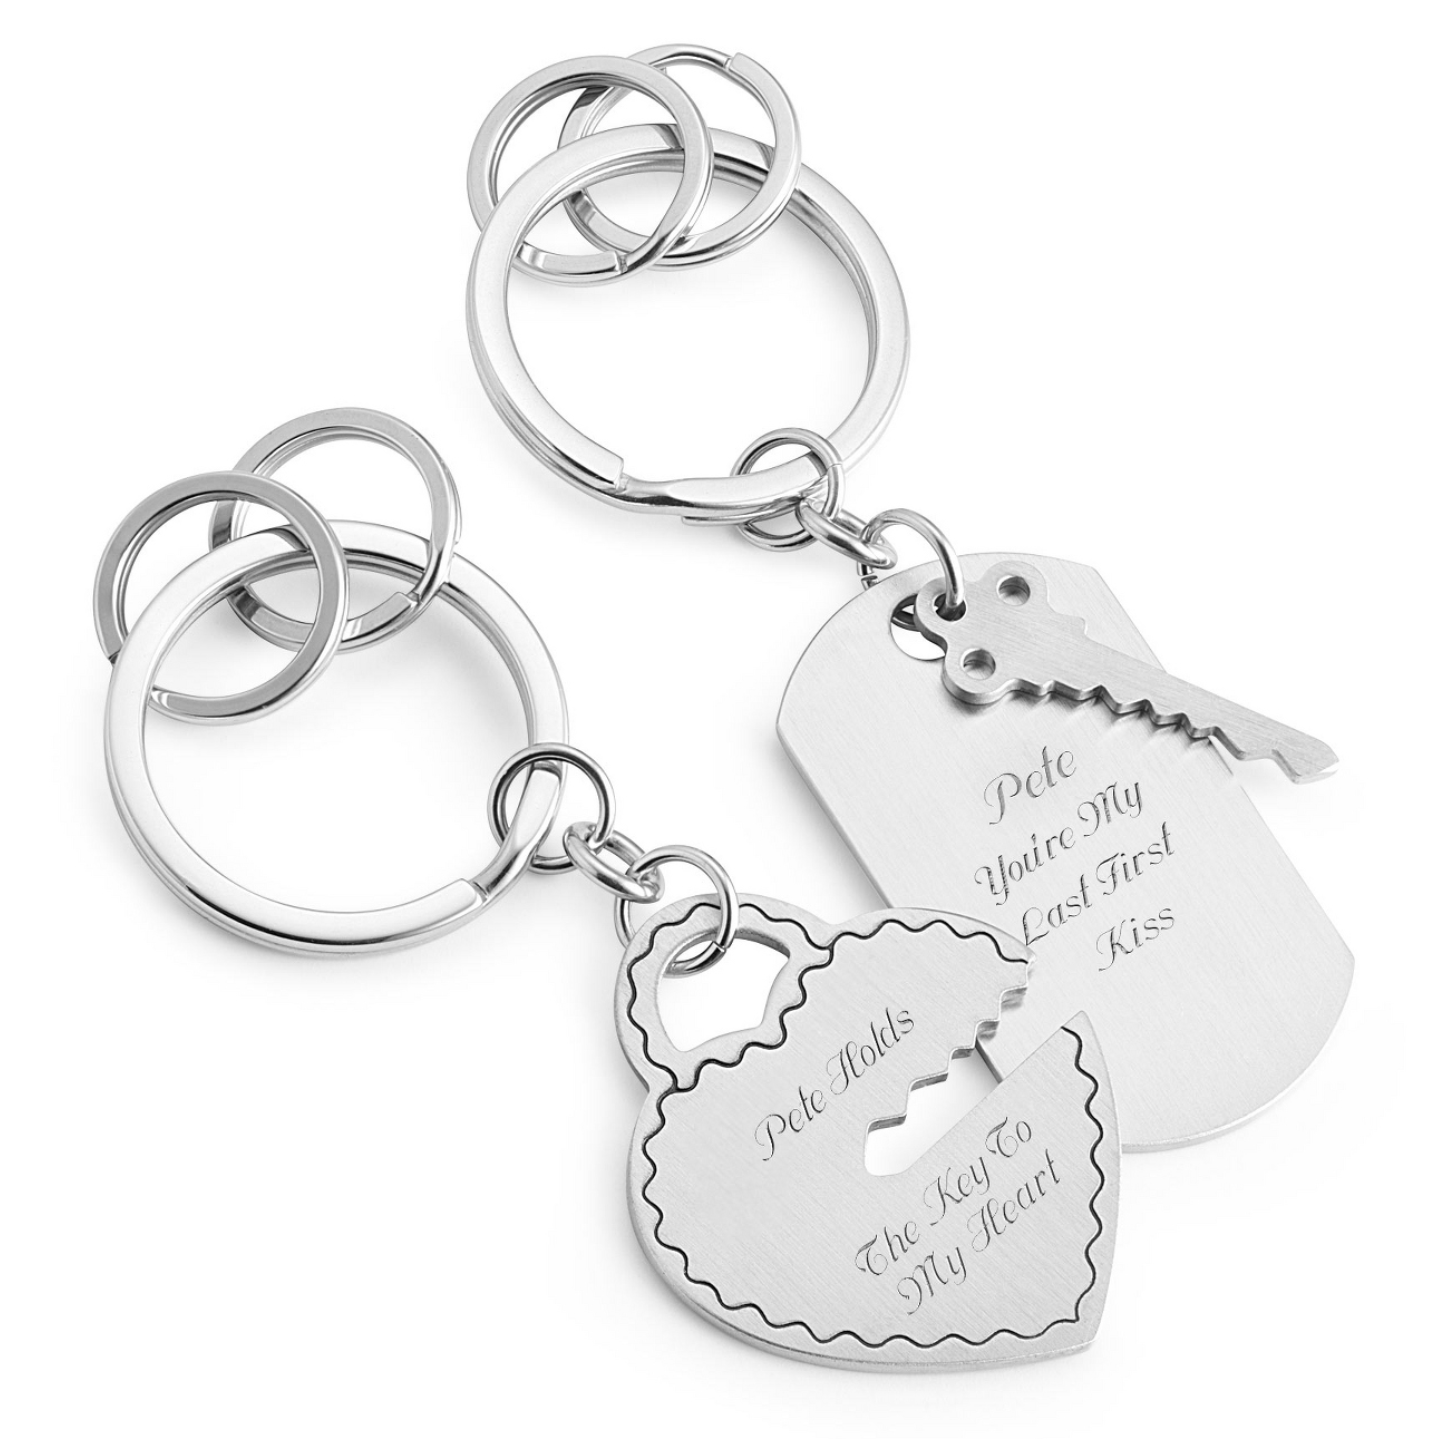 Key to my heart keychain set from Things Remembered